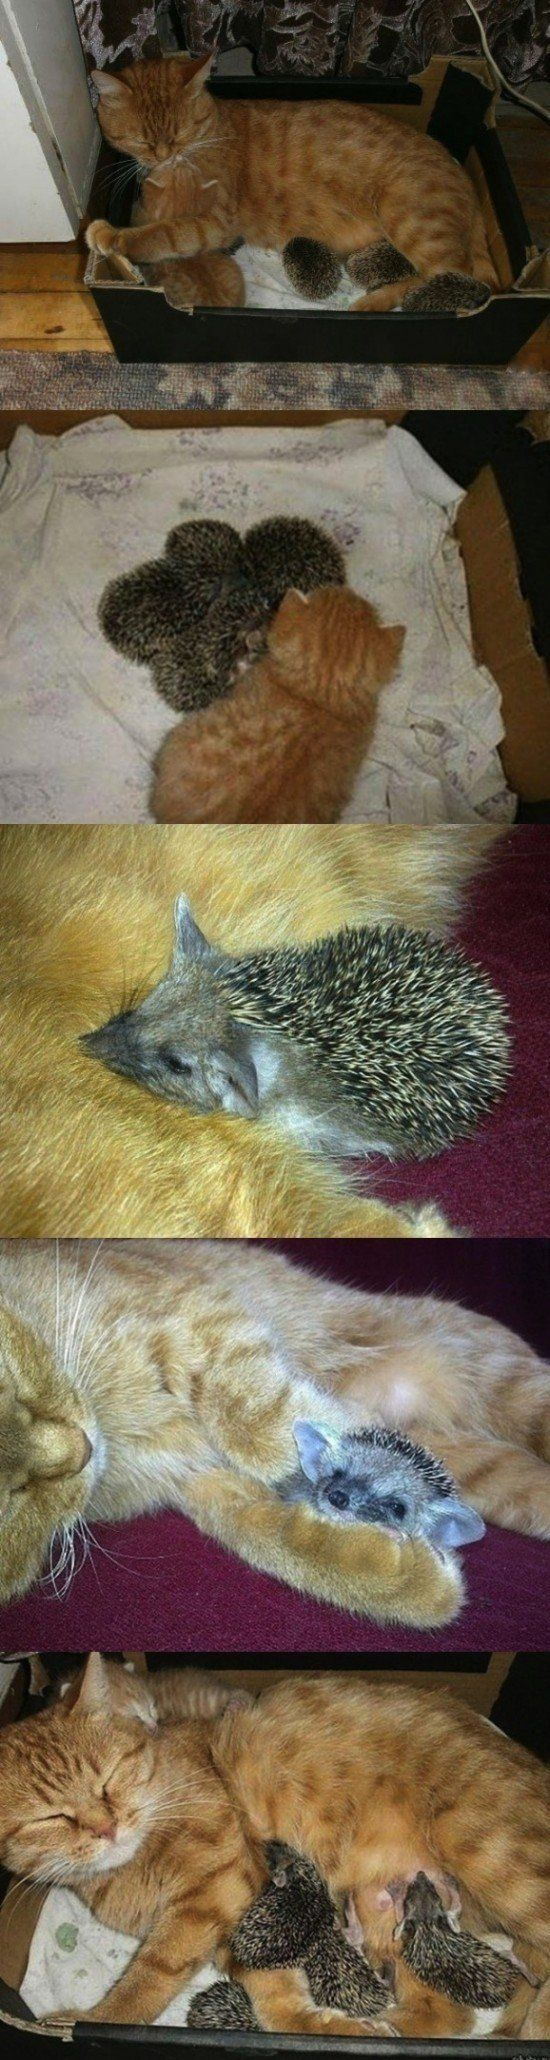 "This cat adopted some hedgehog babies. - Imgur // best comment: """"I'll keep them because I can use them as cat brush when they are older."" - Cat."""